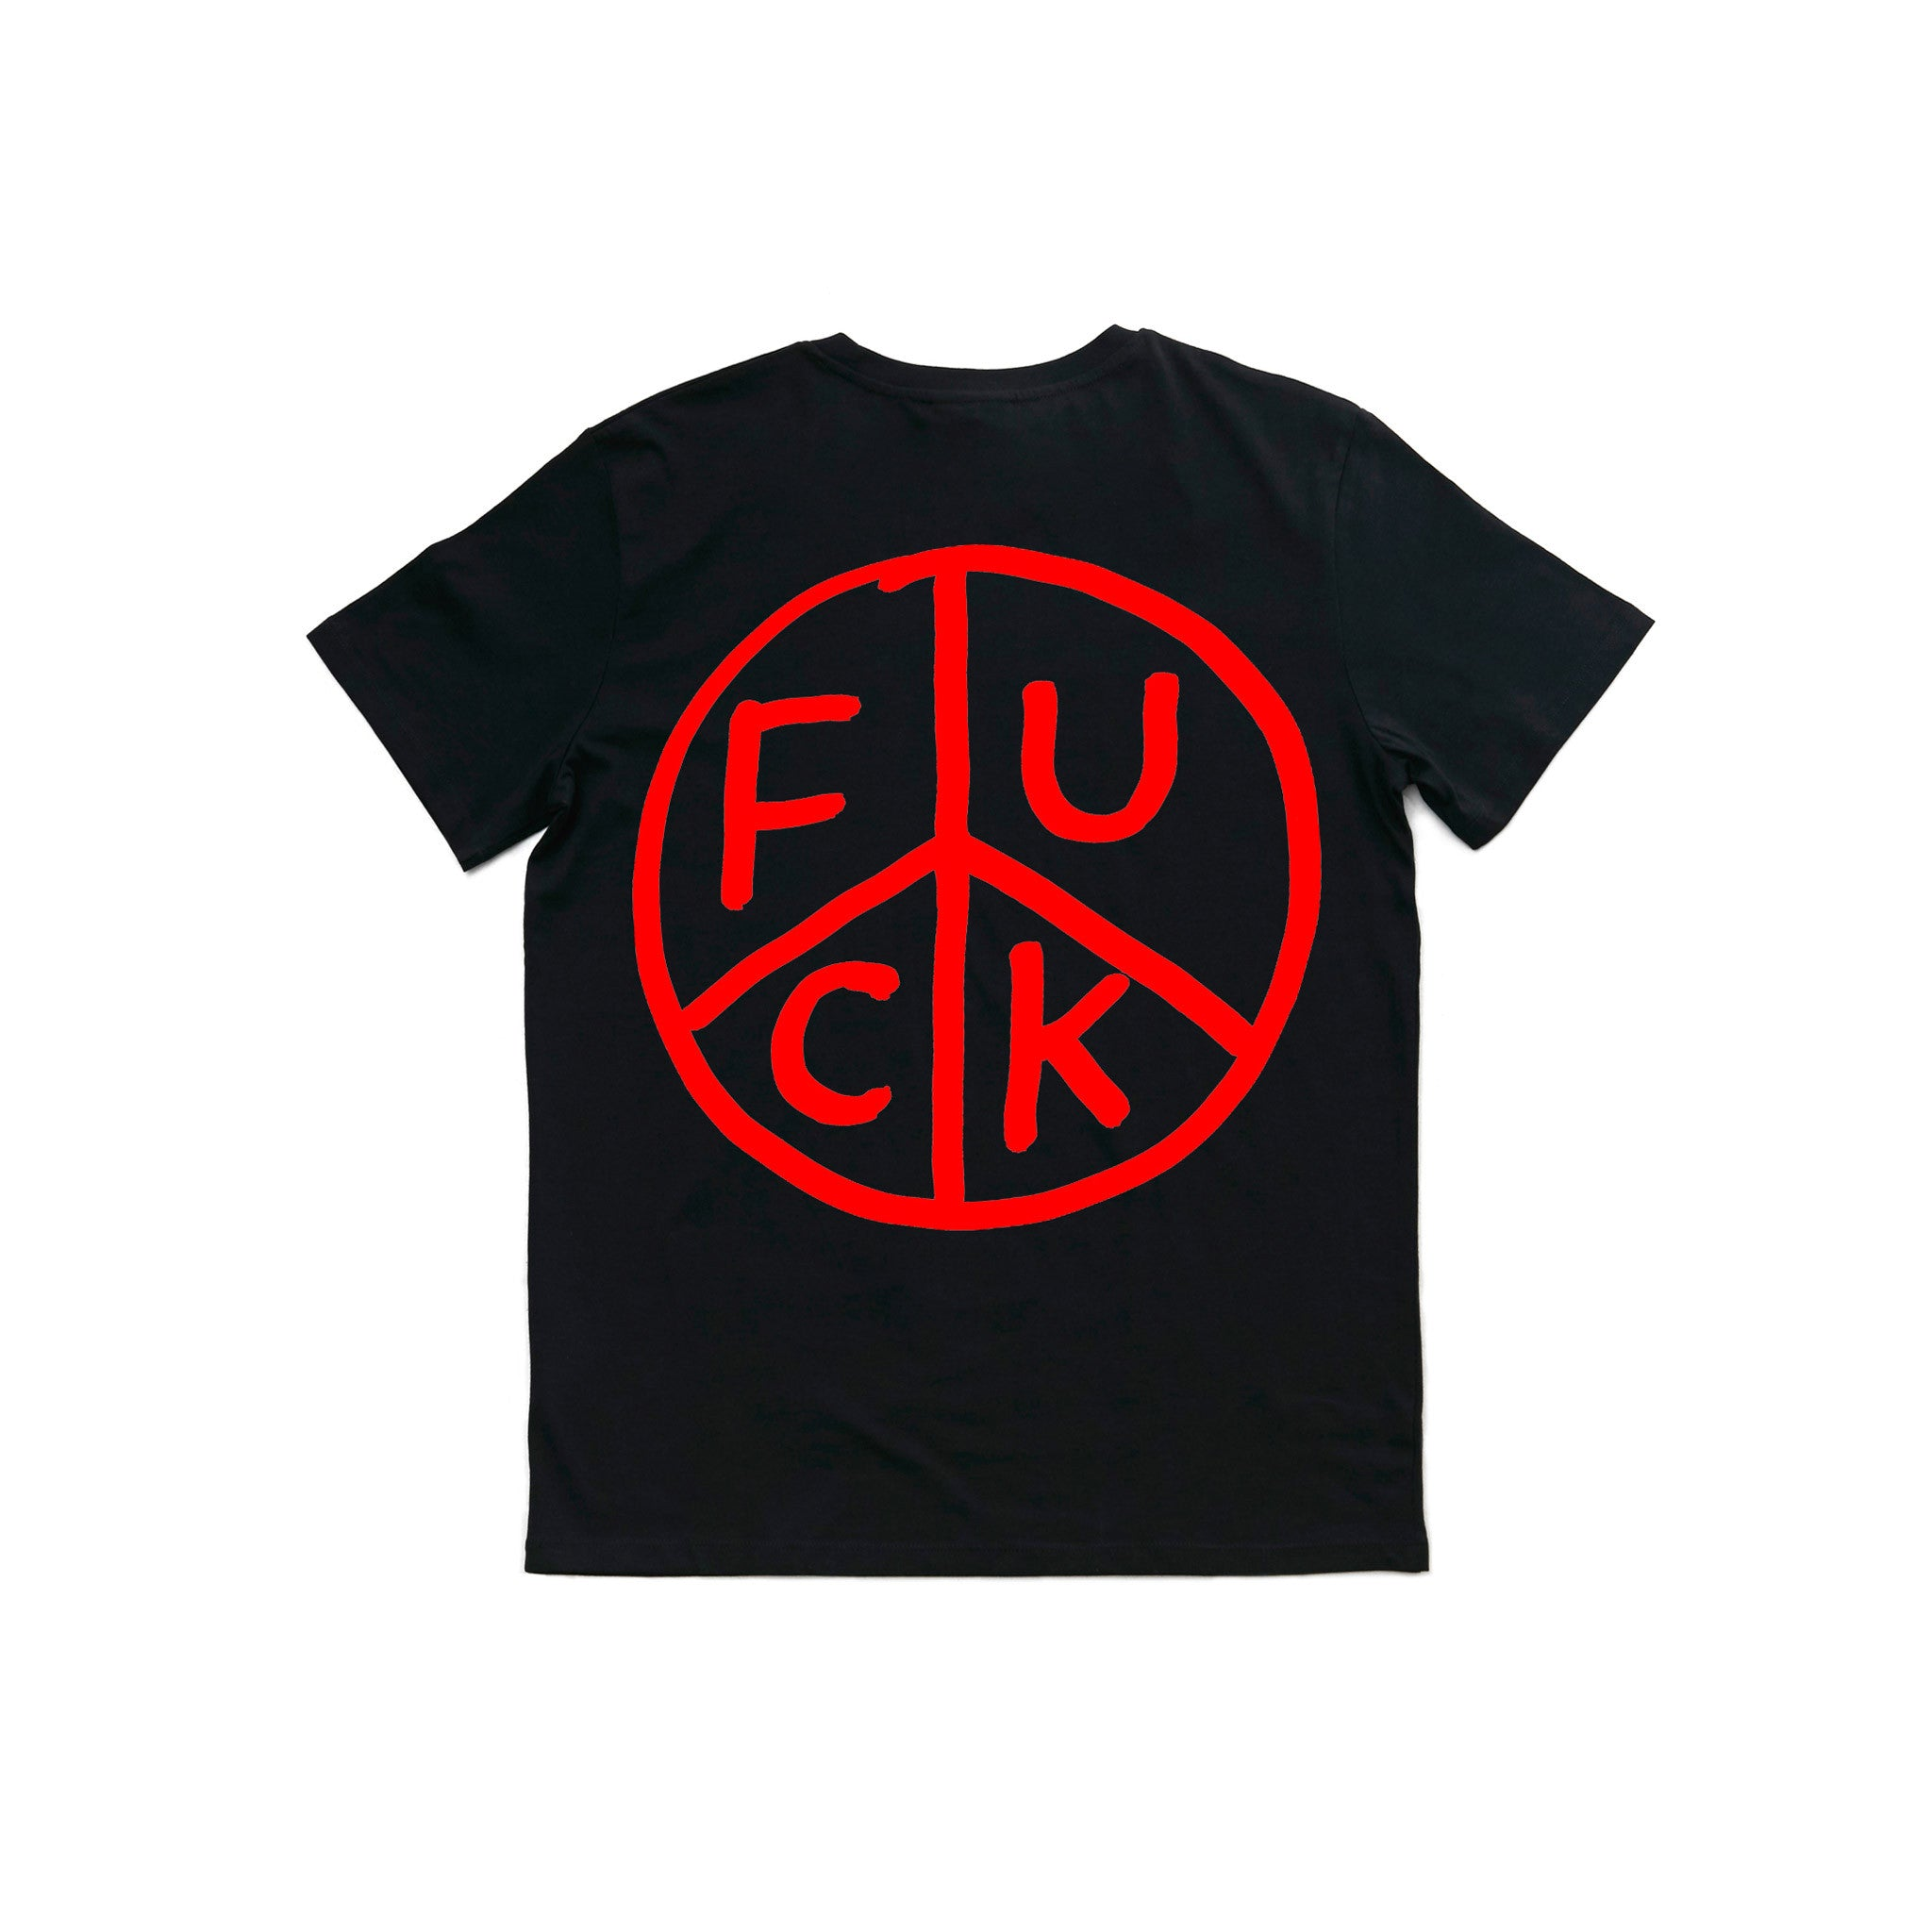 Fuck Tee Egyboy T-Shirt Black Back